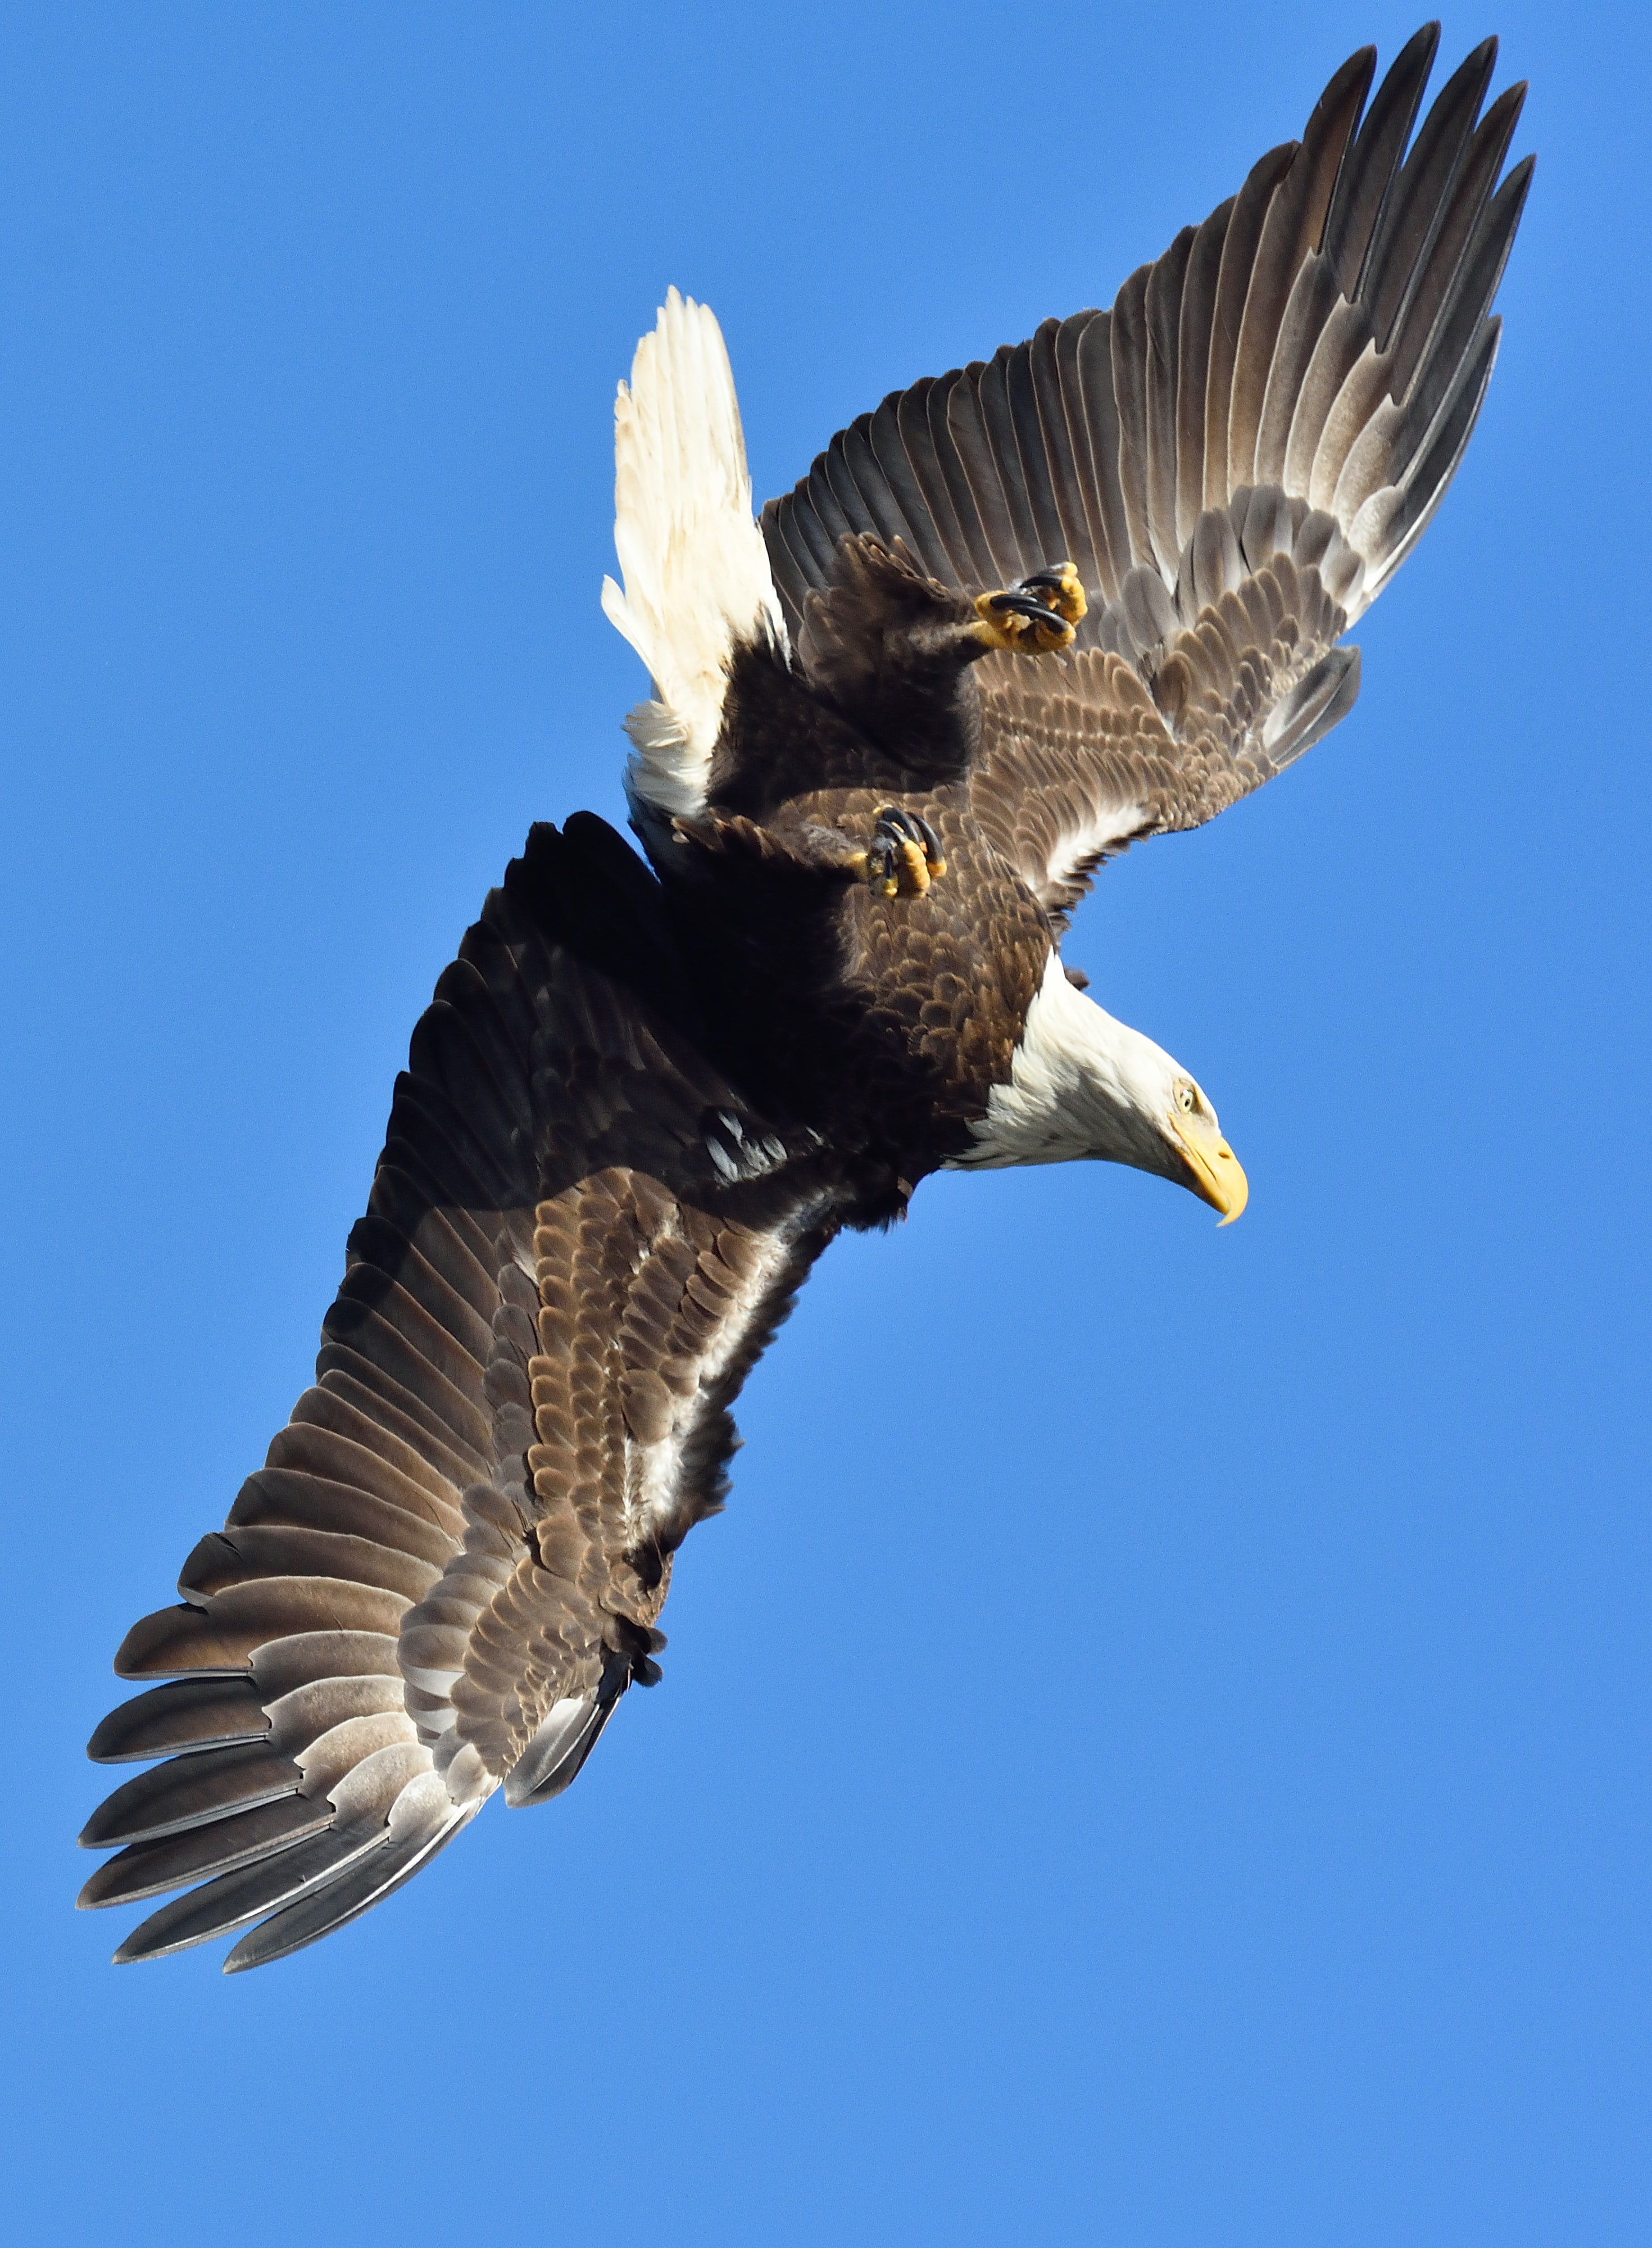 bald eagle in mid air during day